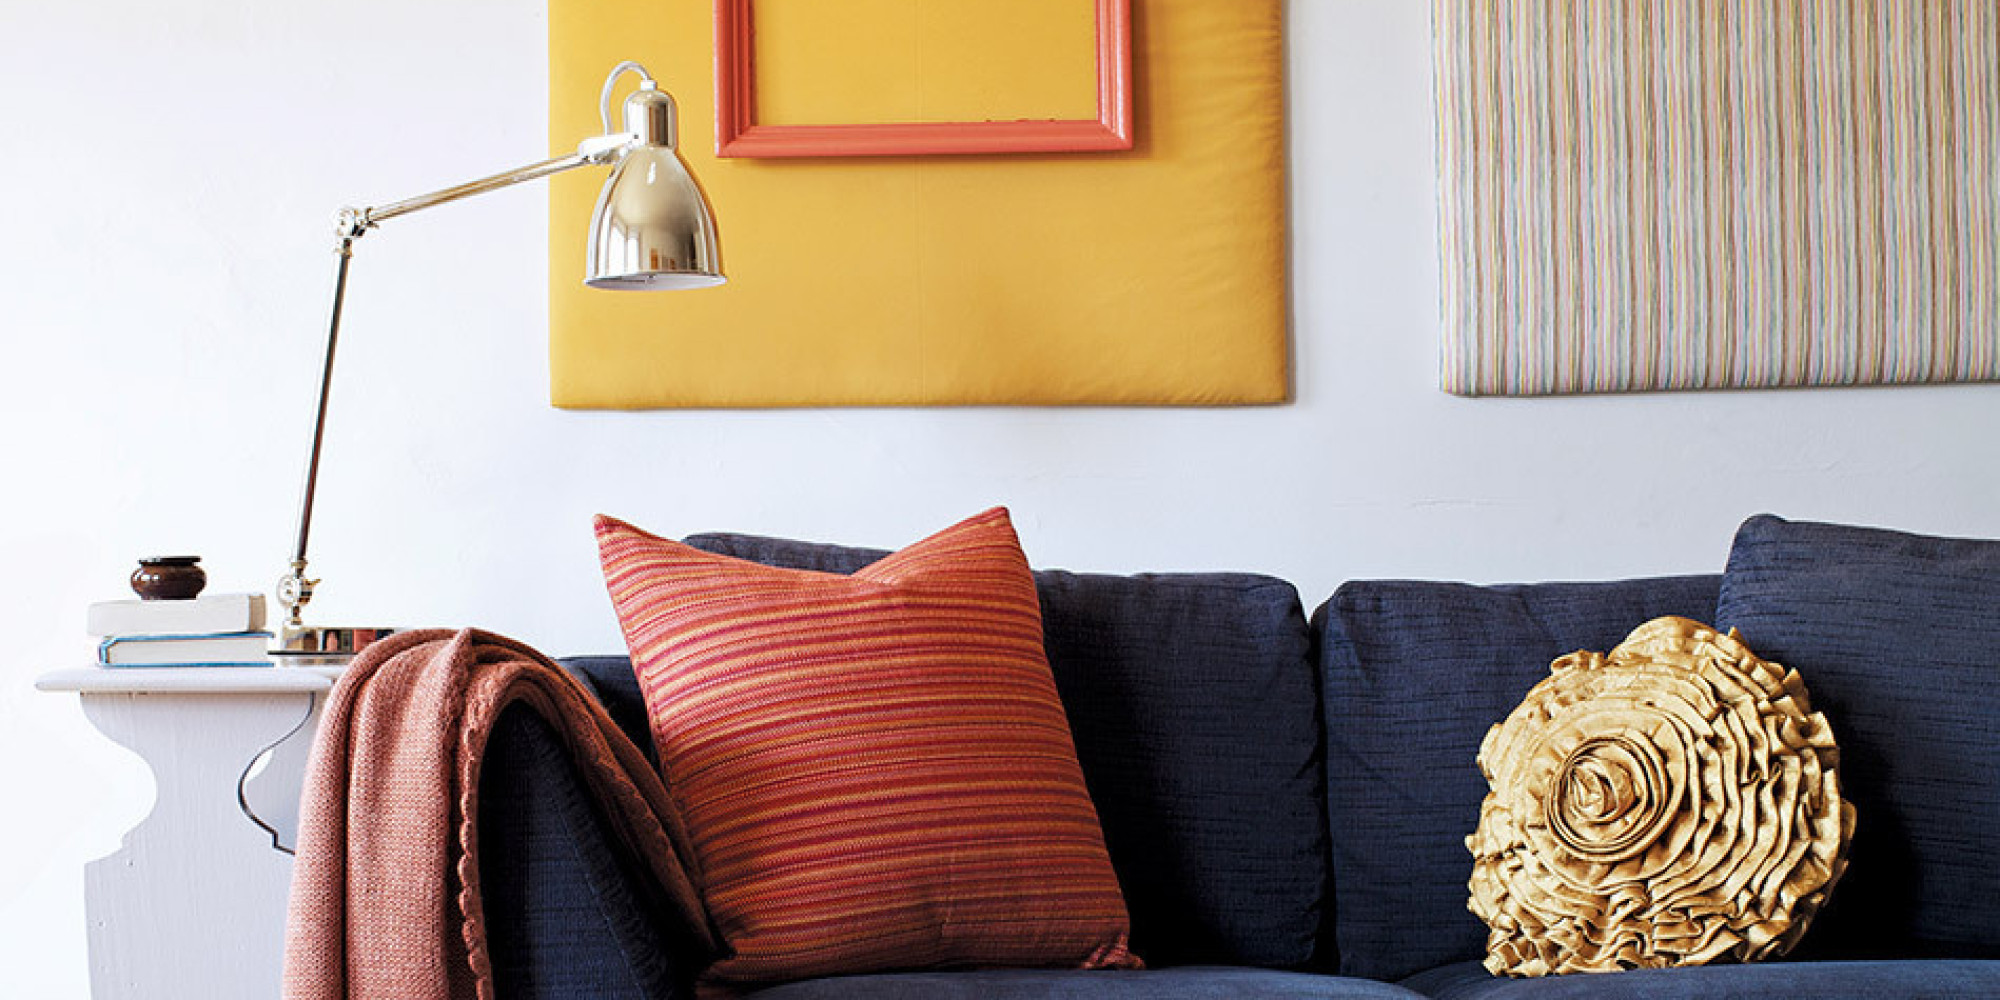 6 apartment makeover hacks that wont annoy your landlord huffpost - Apartment Rental Decorating Ideas